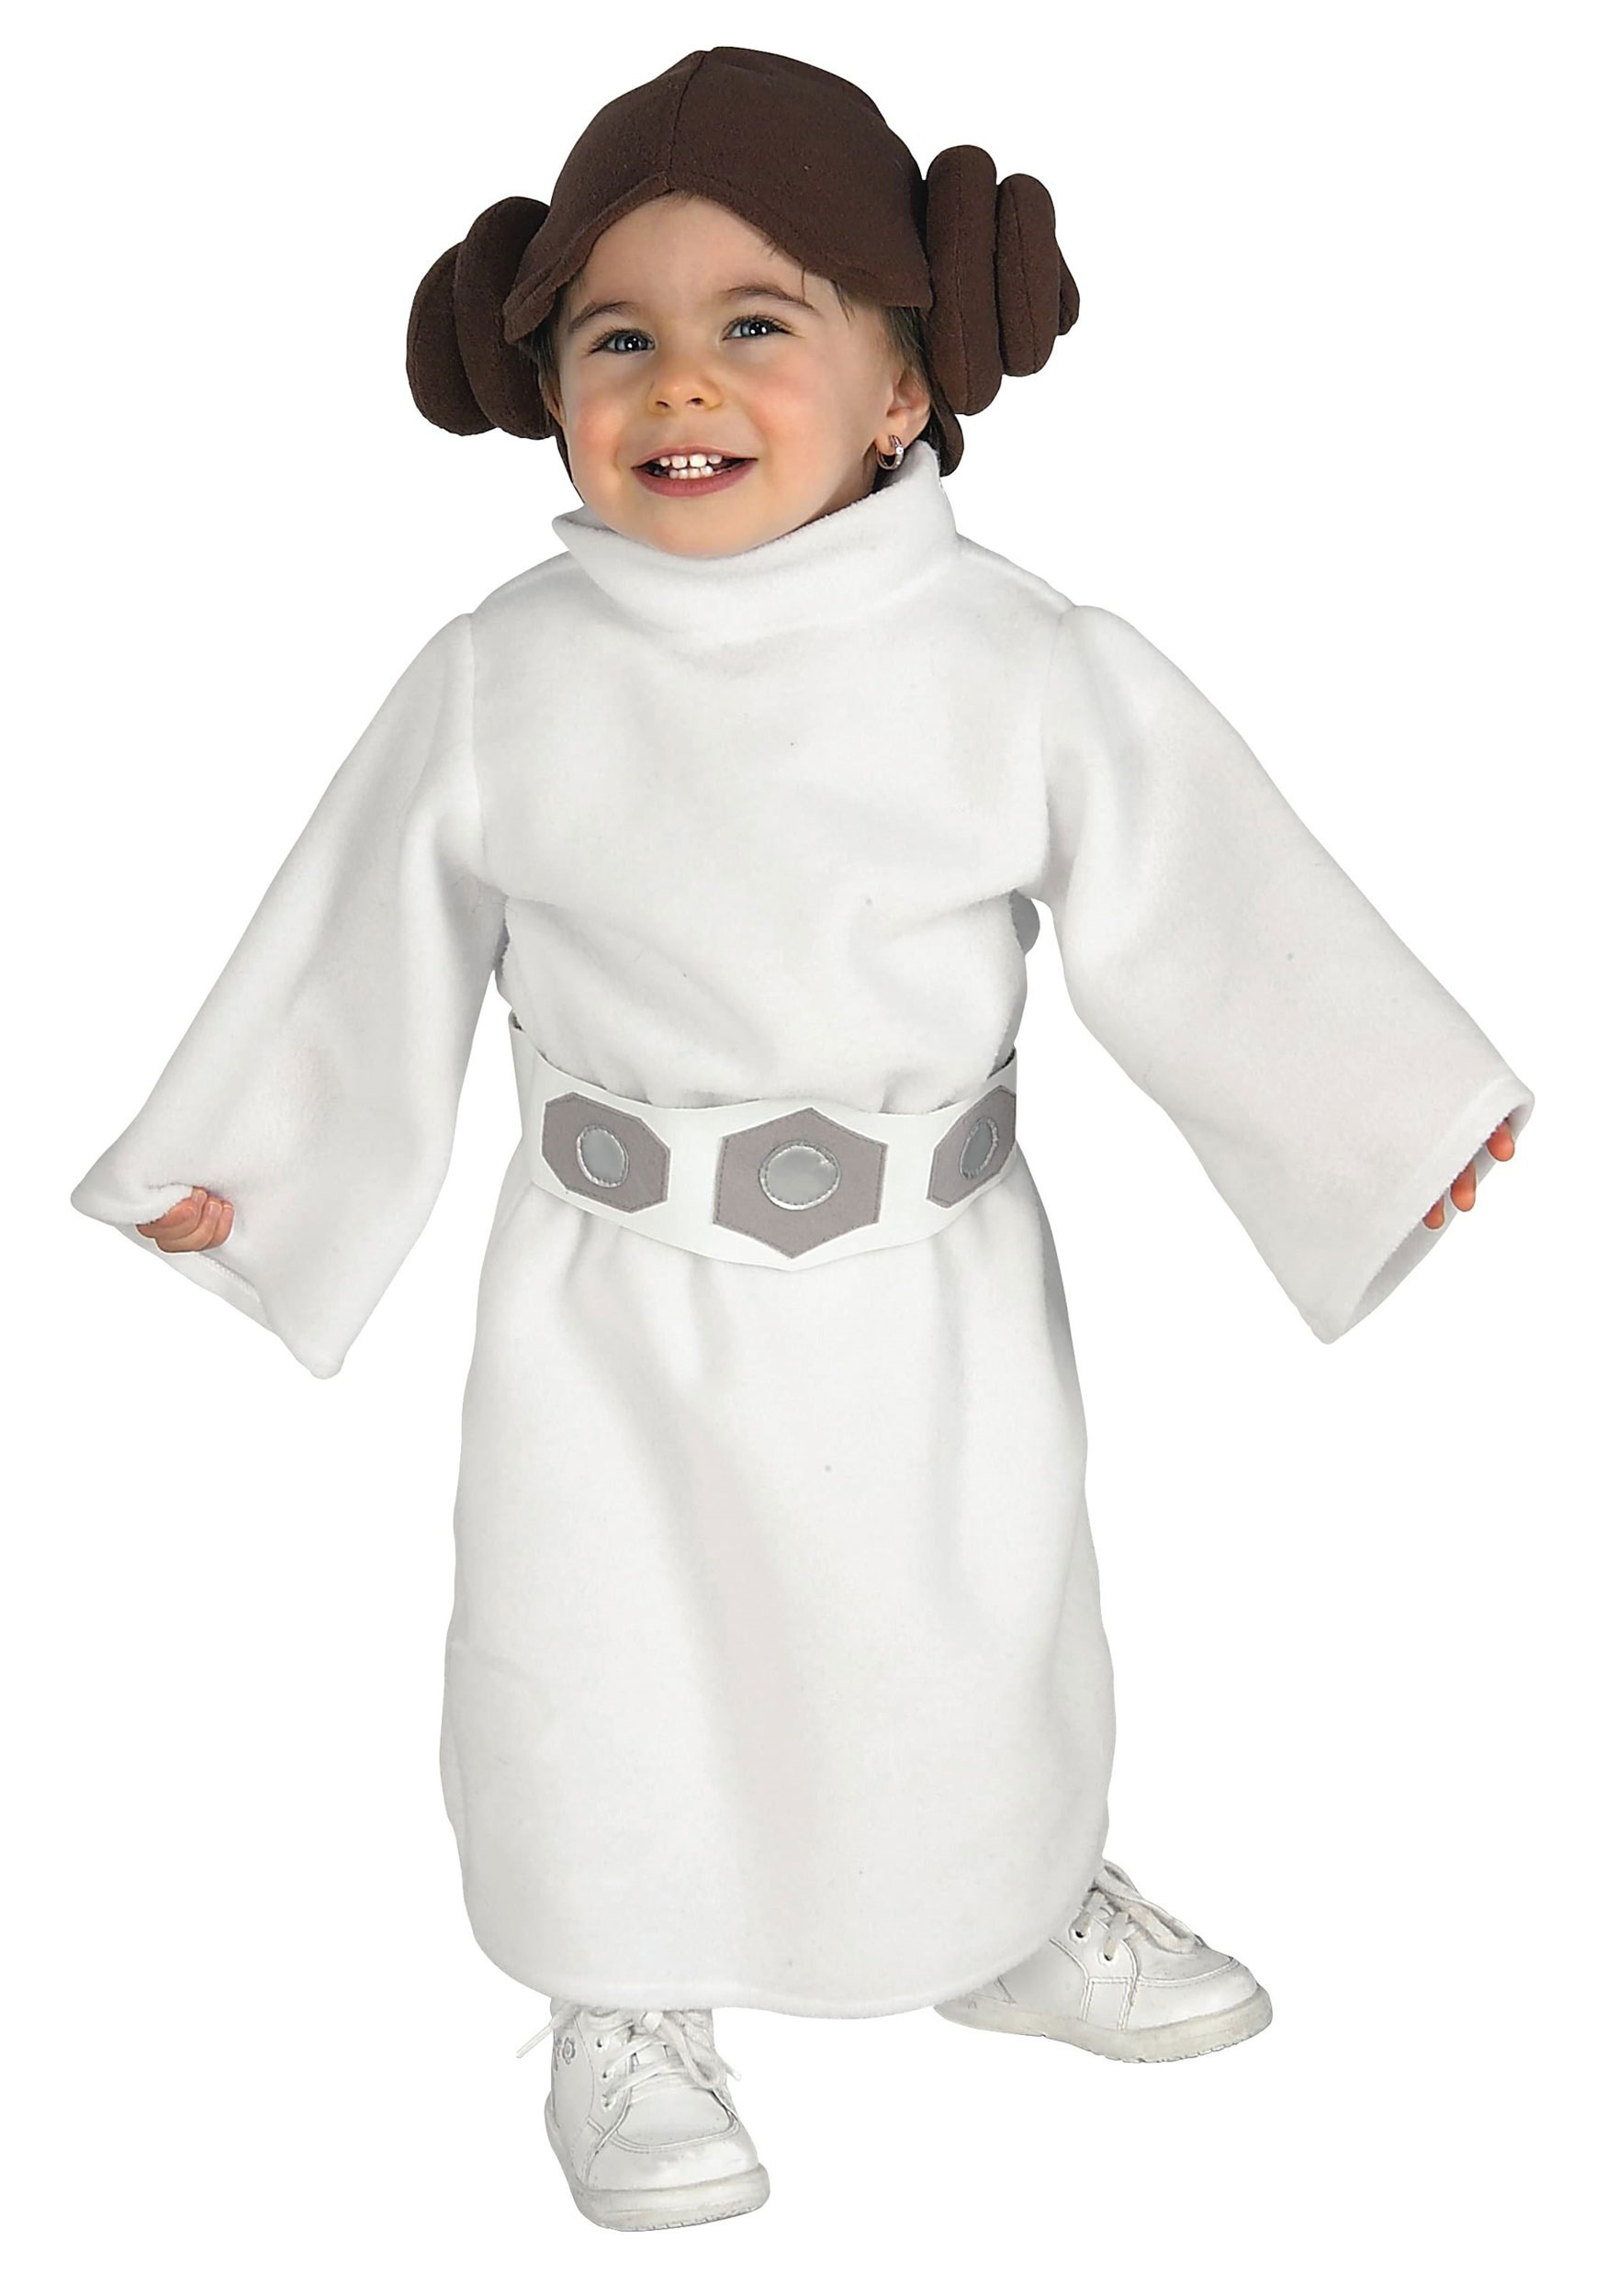 Toddler Princess Leia Costume  sc 1 st  Buy Star Wars Costumes & Toddler Princess Leia Costume - Baby Princess Leia Costume